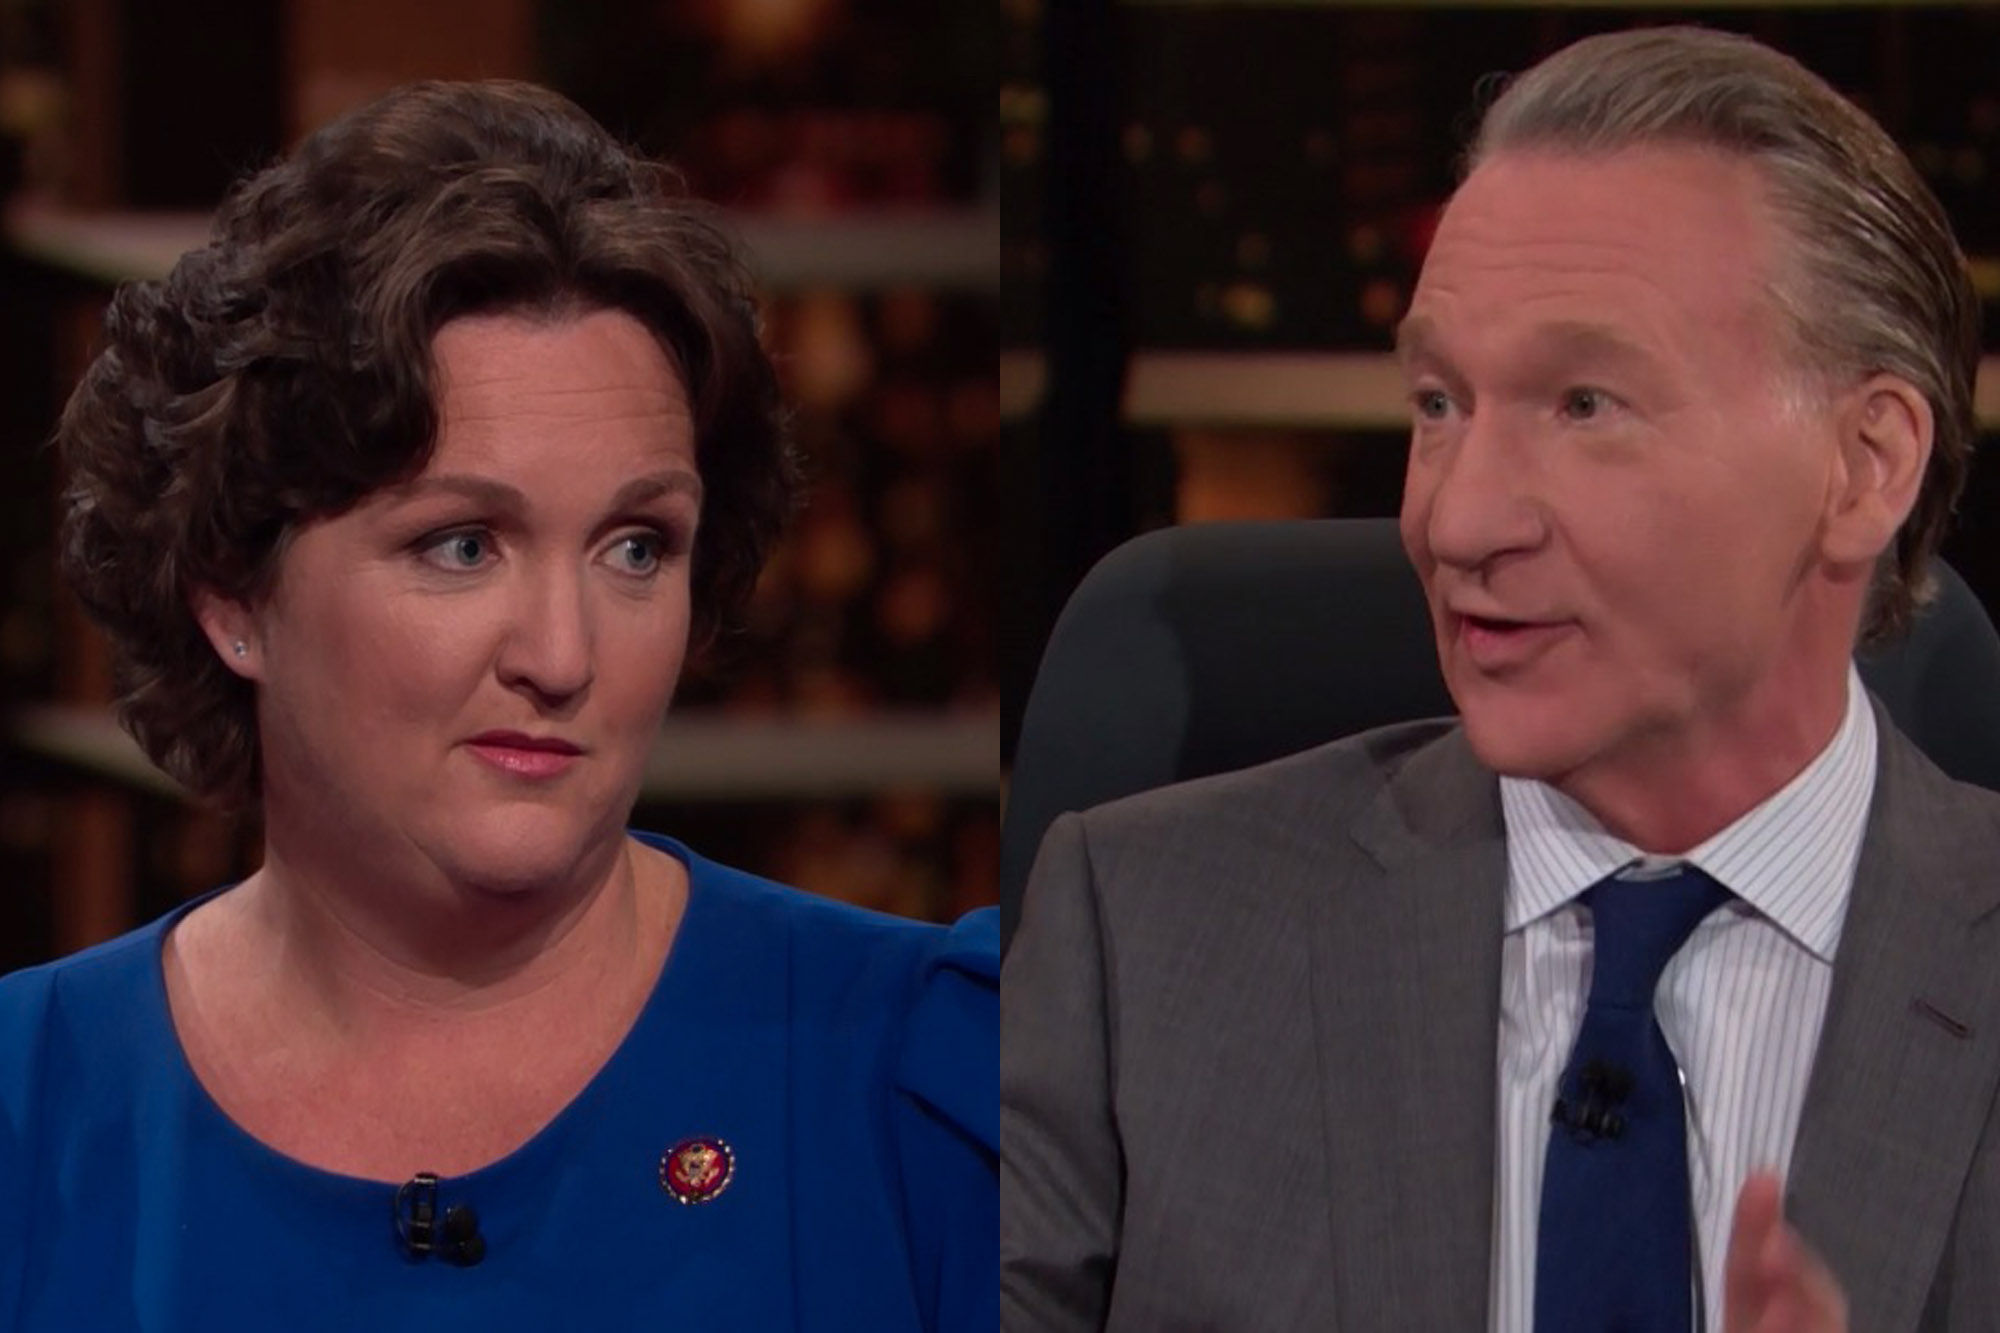 Freshman Rep. Katie Porter Hilariously Takes Down Both Biden and Maher in Two Minutes